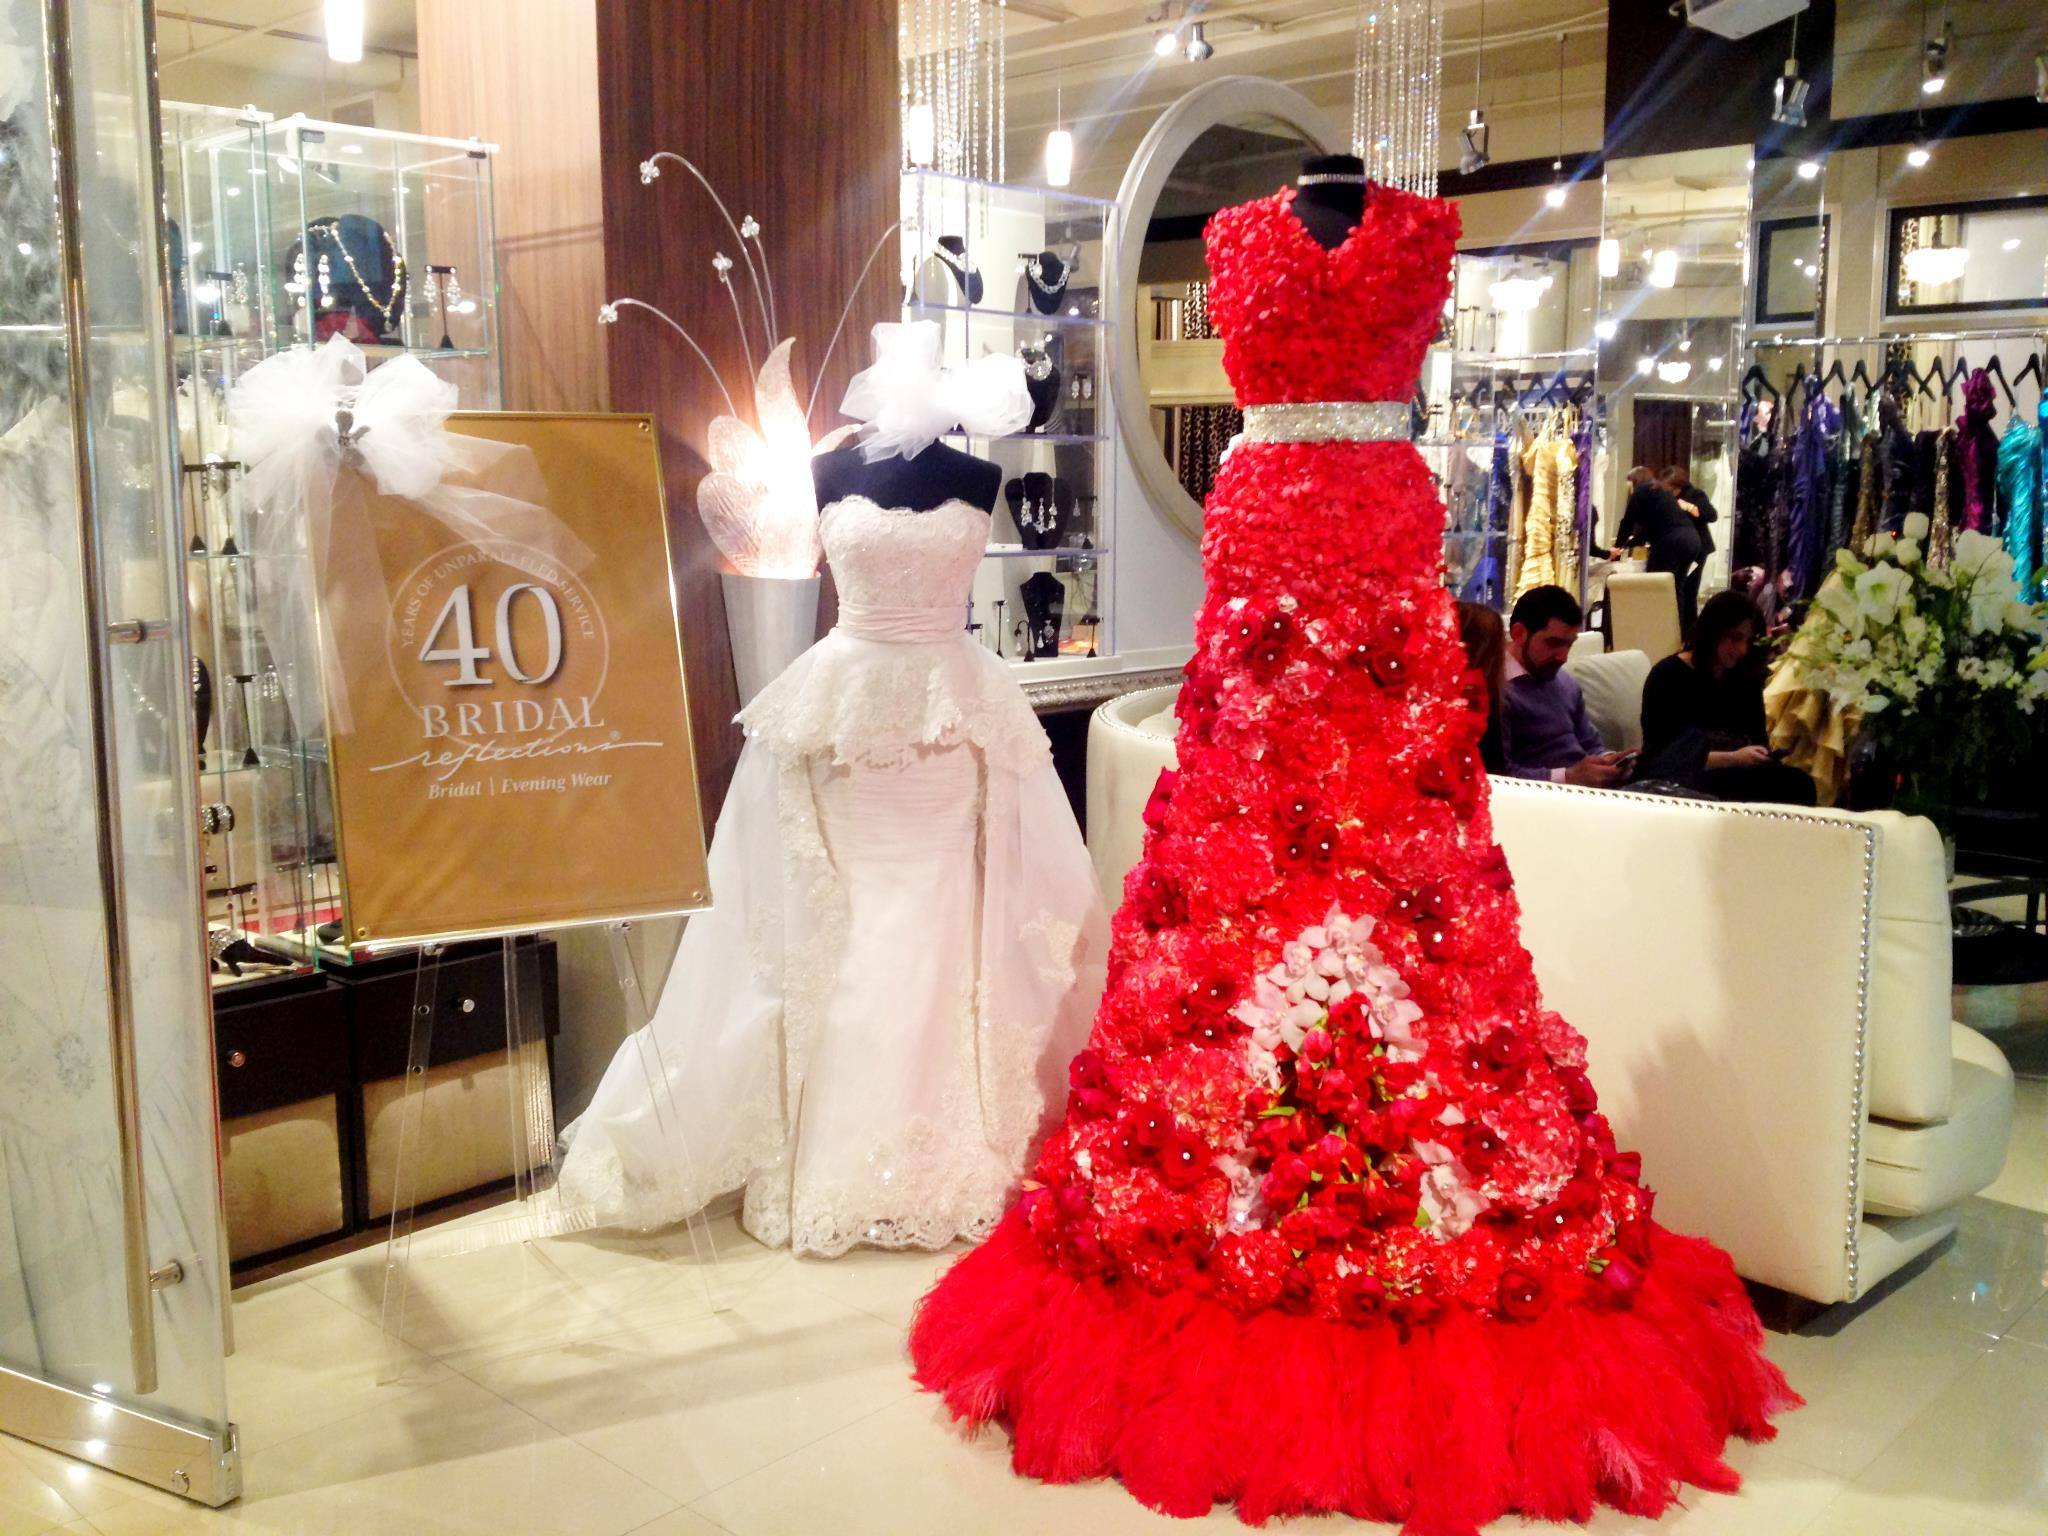 Wedding Dress For 40 Year Old Brides: Our 40th Anniversary Party